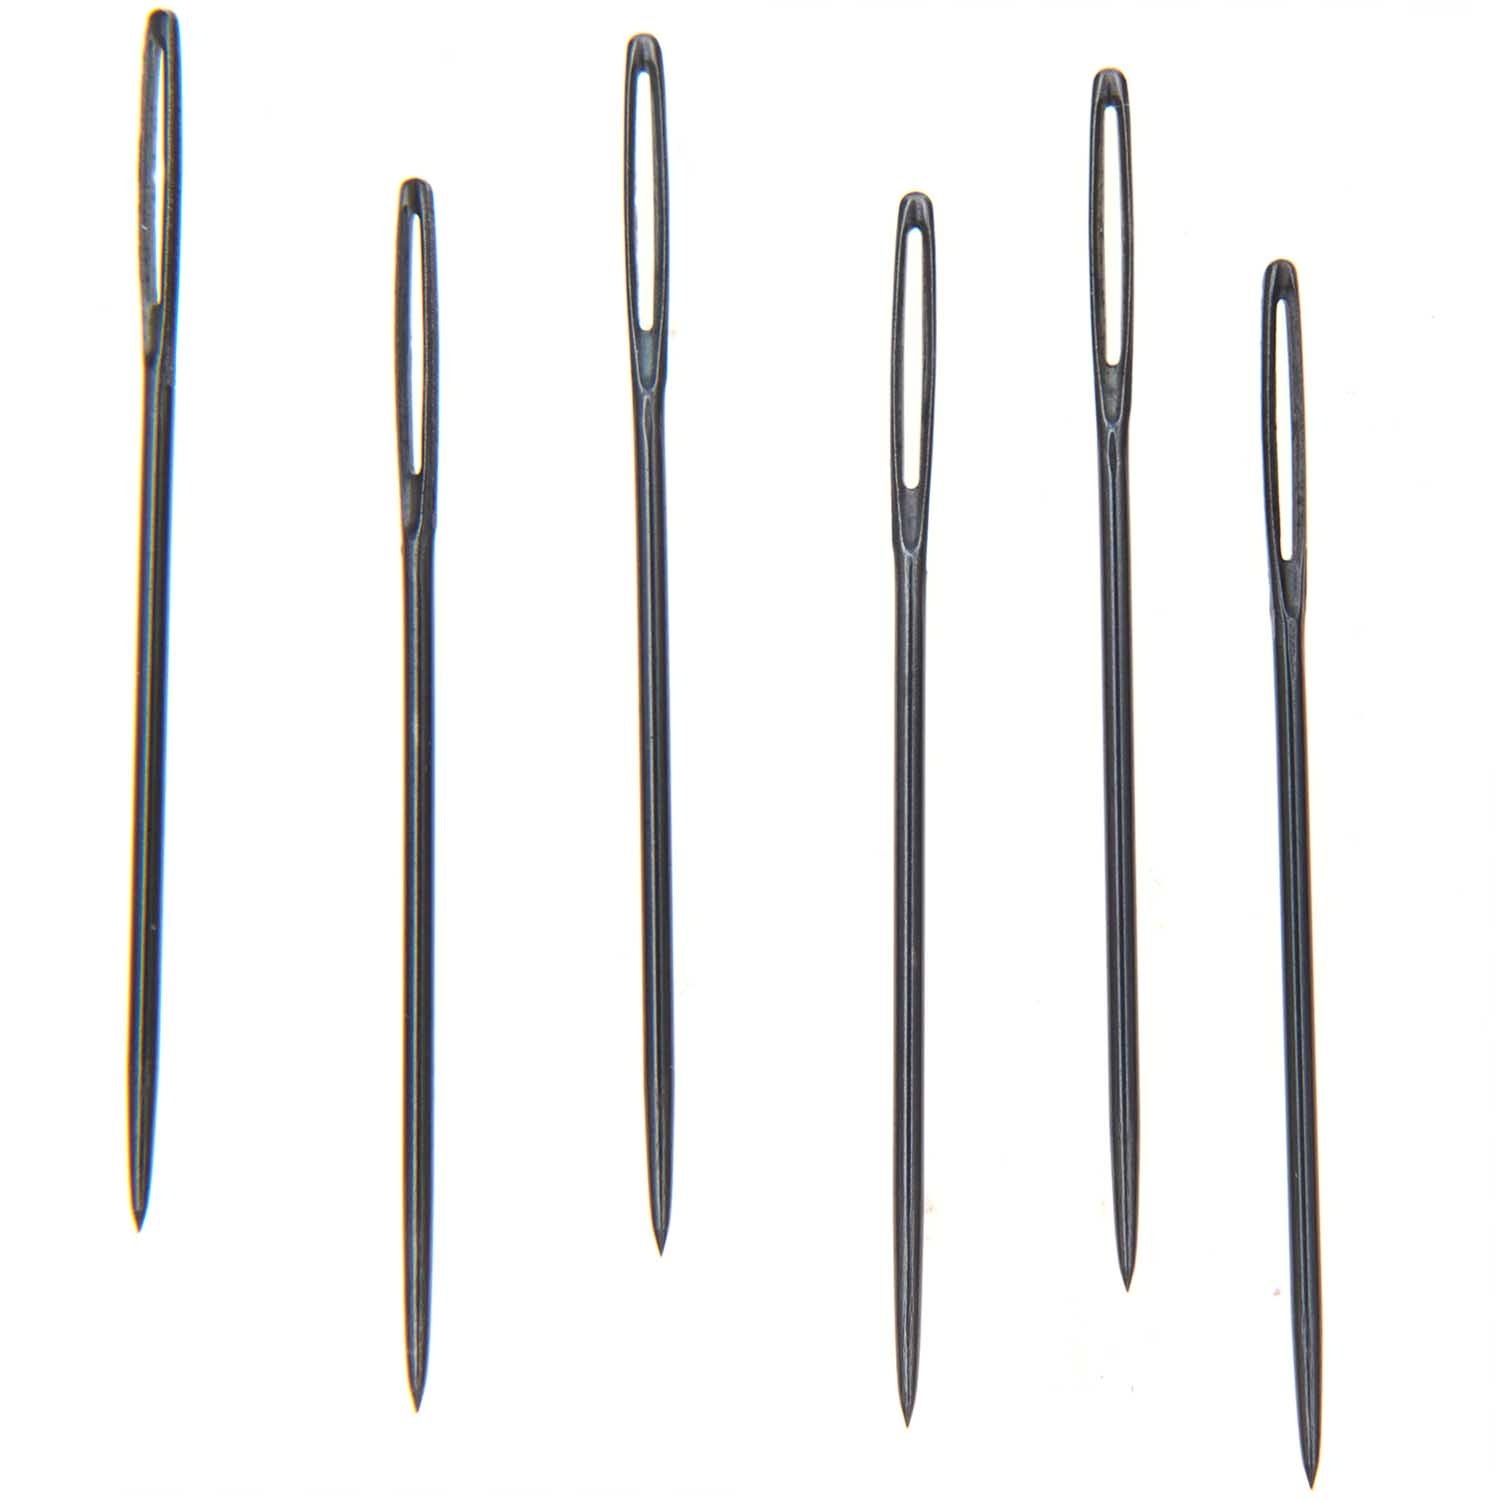 Rico NAY EMBROIDERY NEEDLES 18 6 PIECES pointed